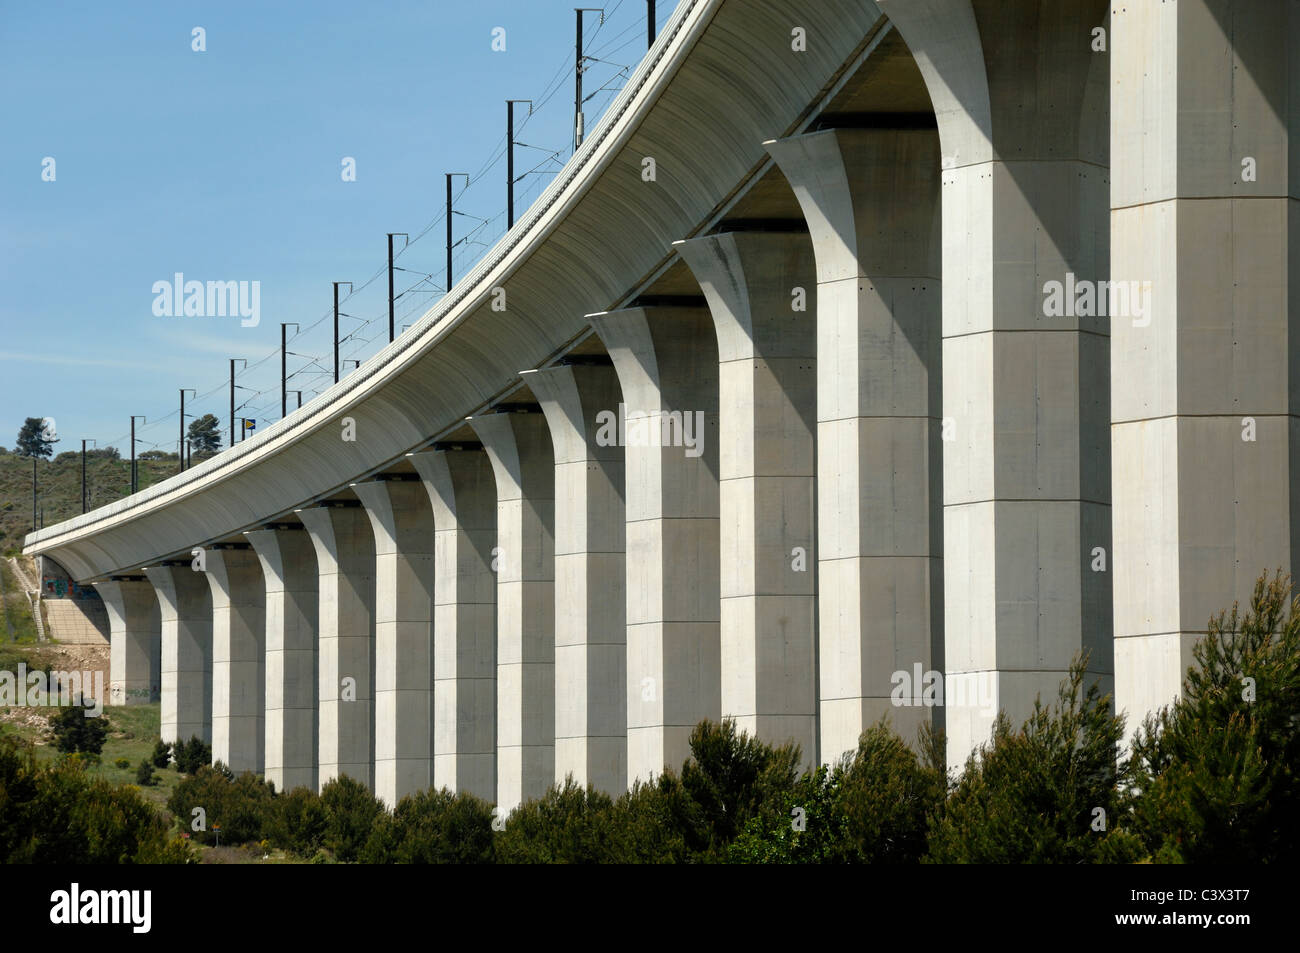 Ventabren Rail or Railway Viaduct & Concrete Columns of Pillars Provence France - Stock Image